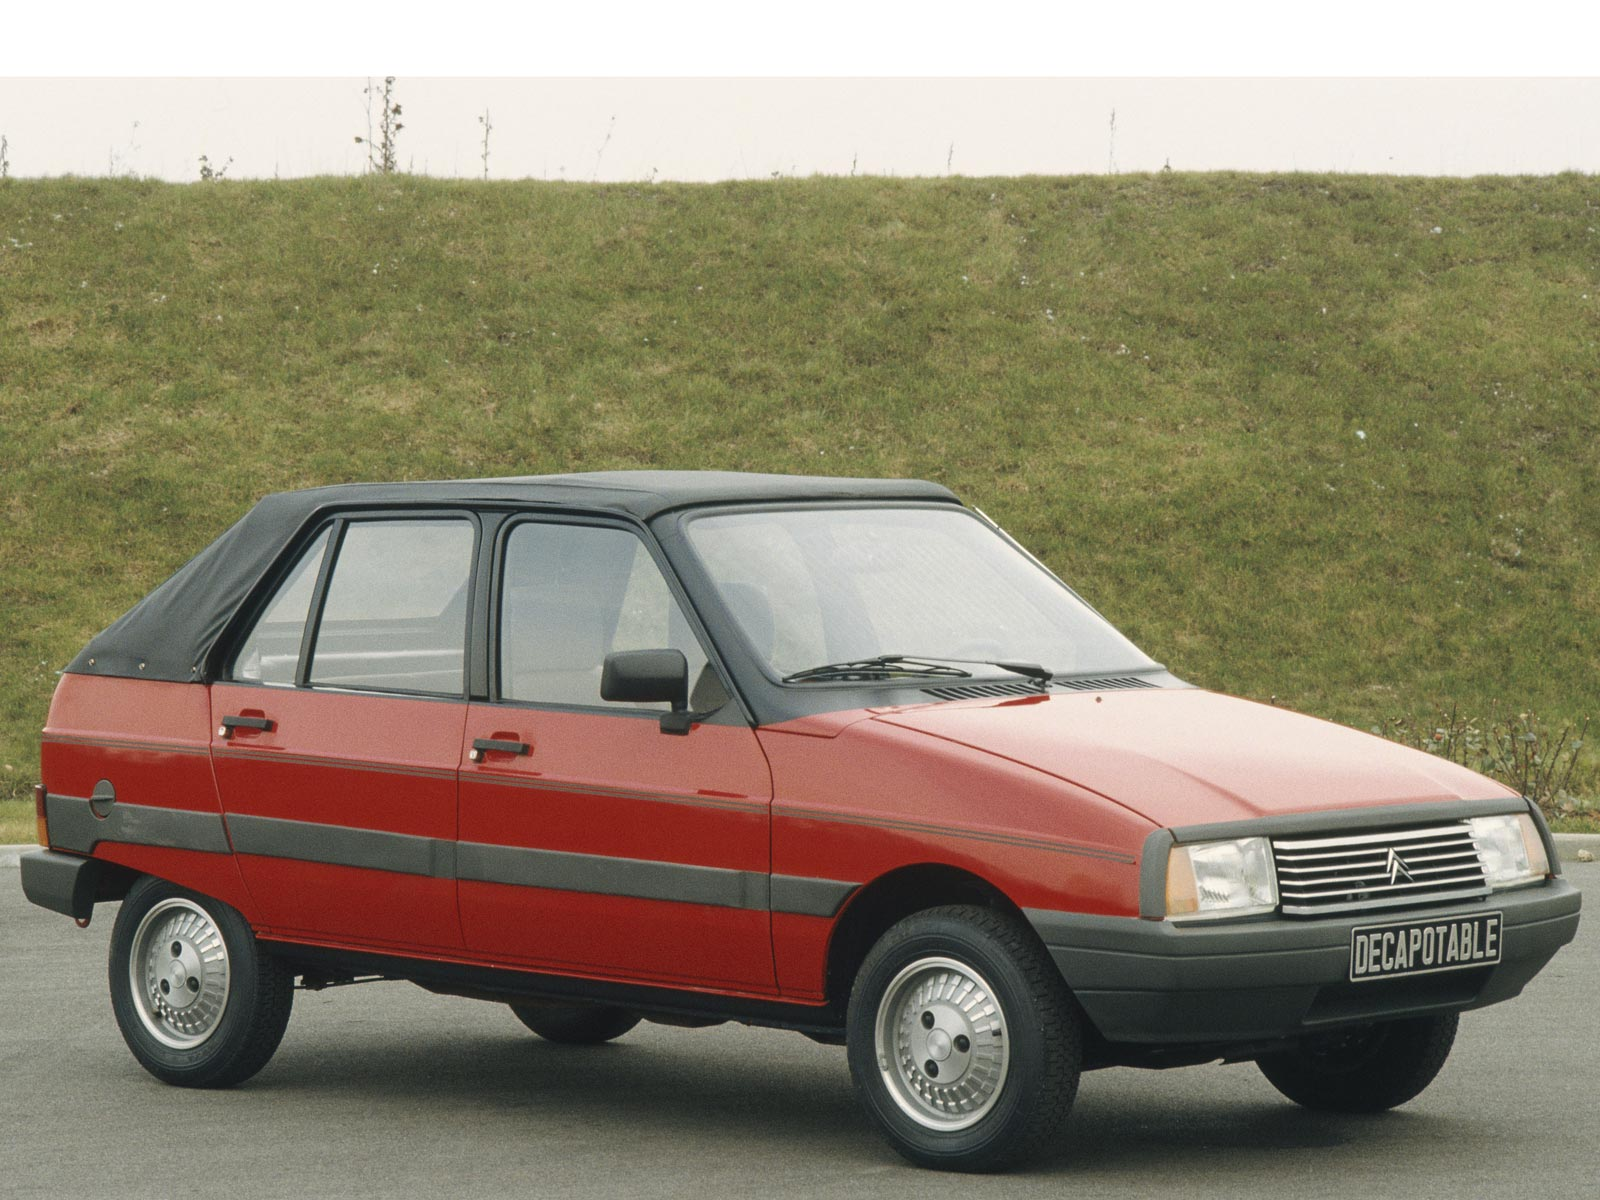 1983 Citroen Visa Decapotable